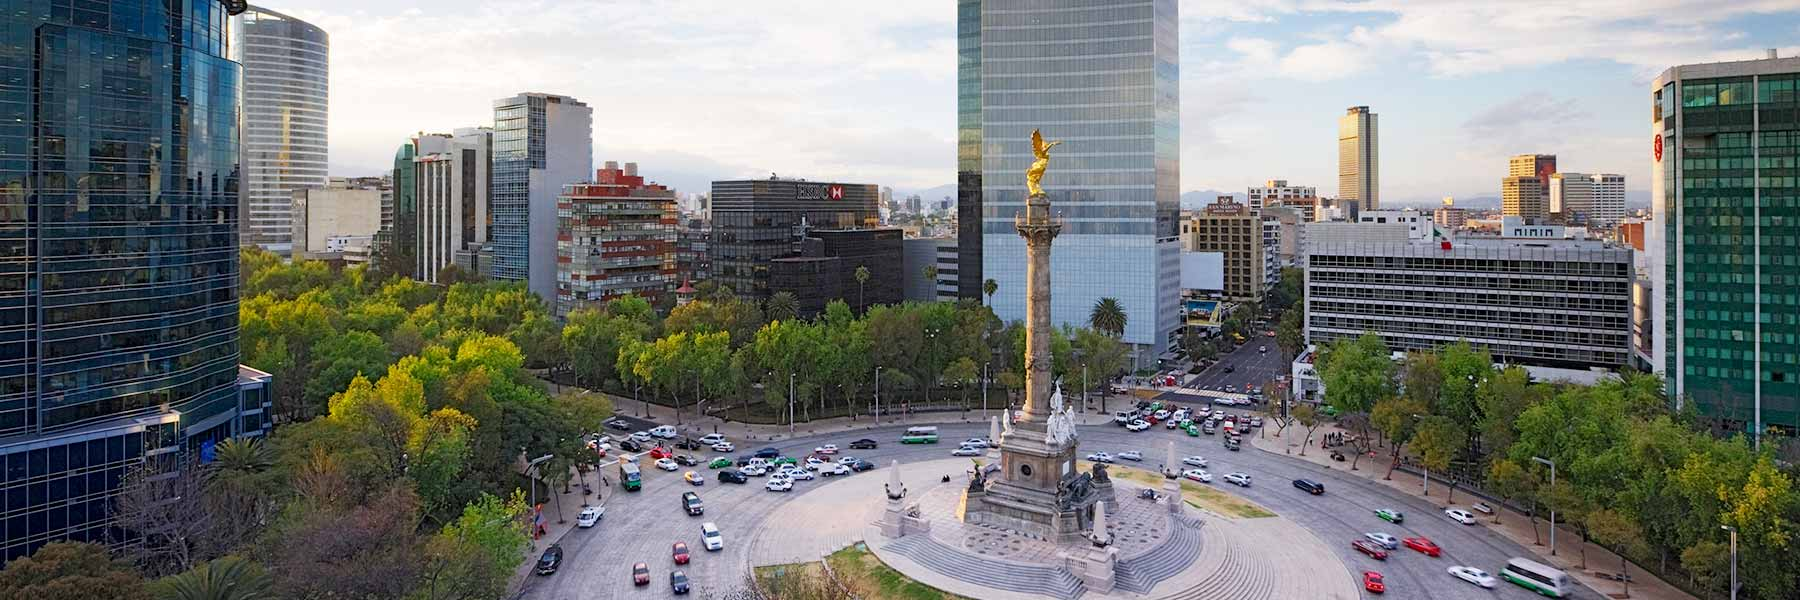 Monumento a la Independencia in Mexico City, Mexico